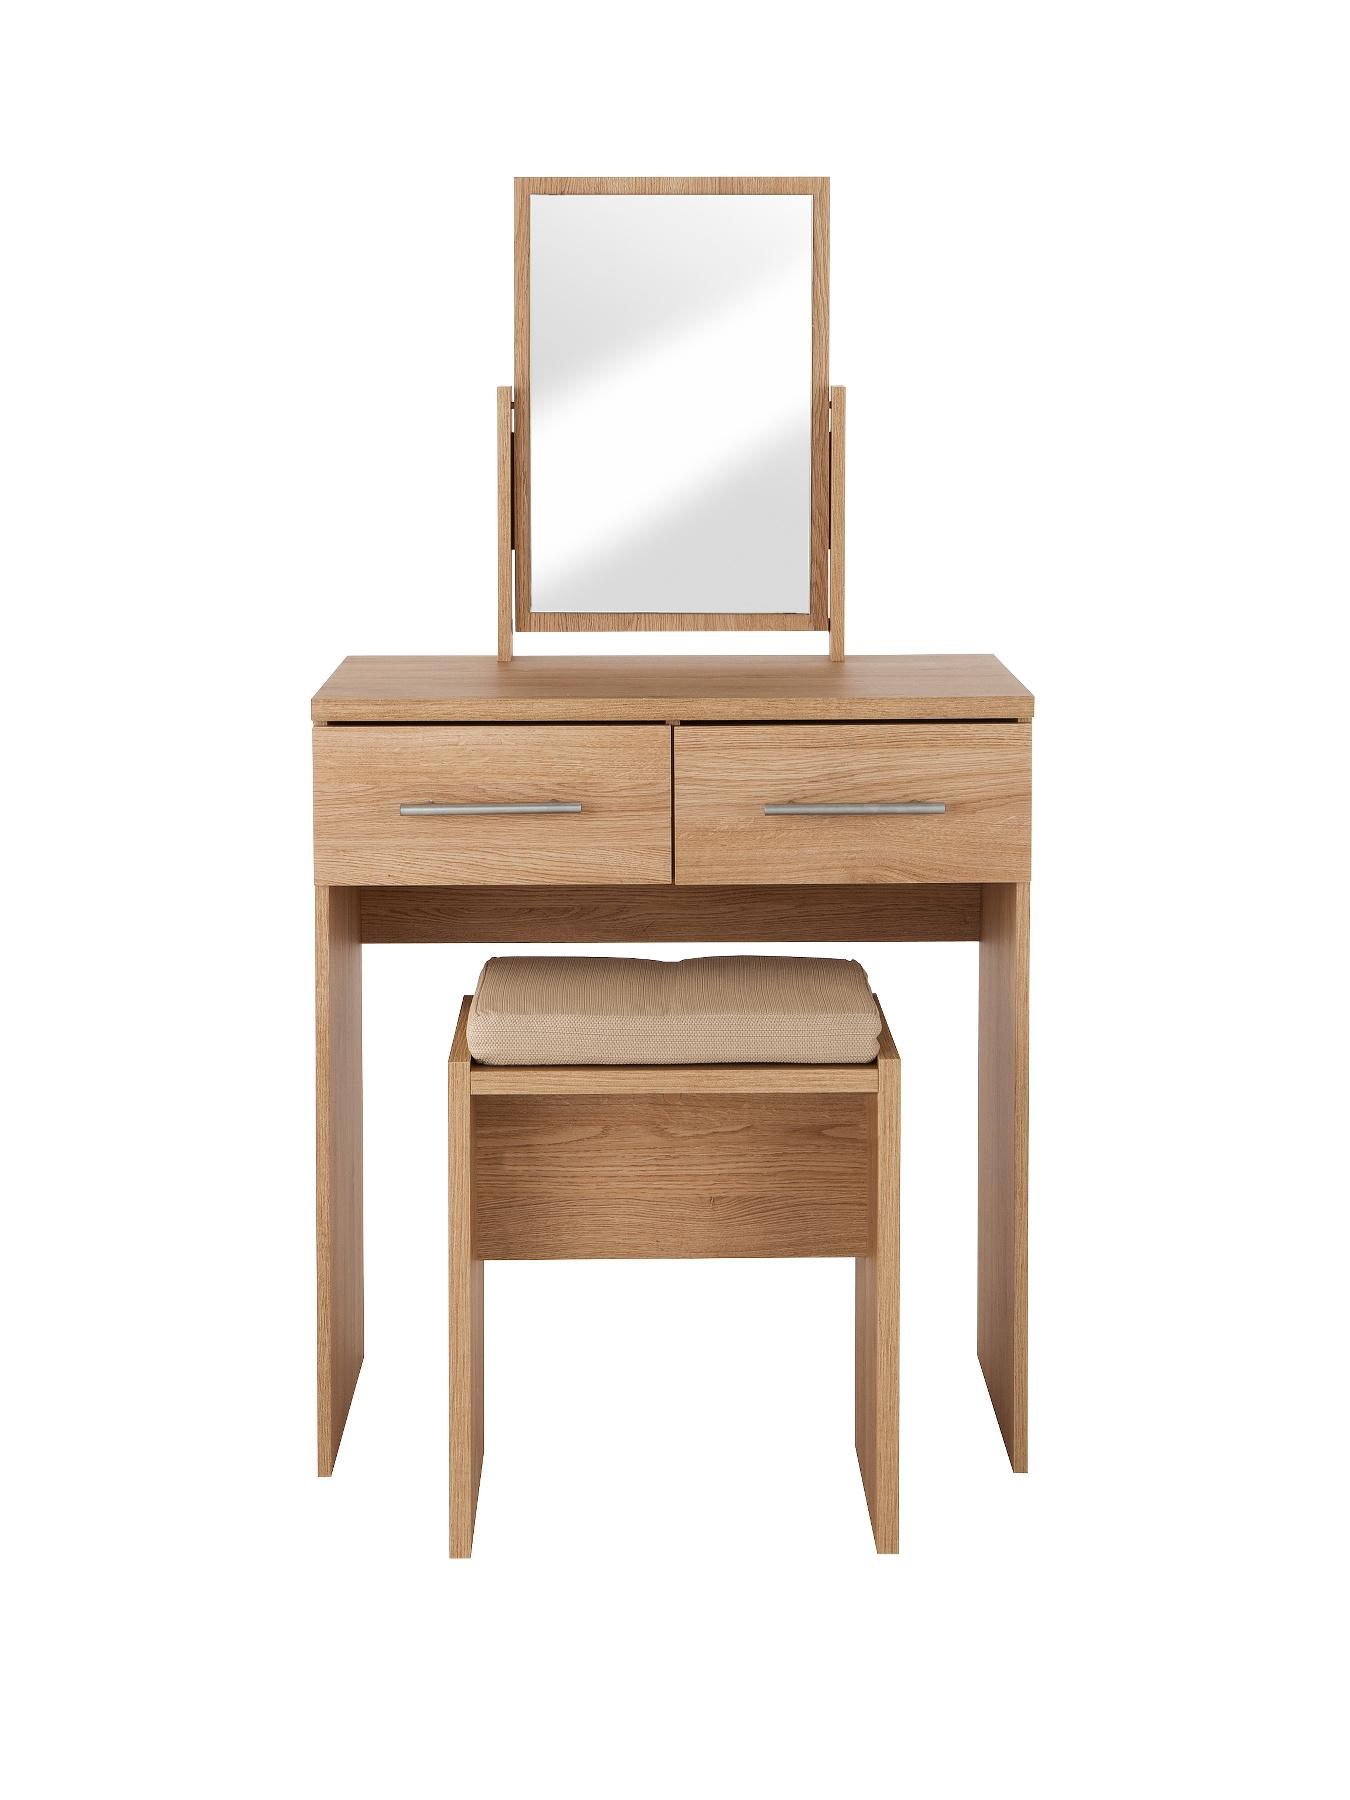 New Prague Dressing Table, Stool and Mirror Set, White,Black